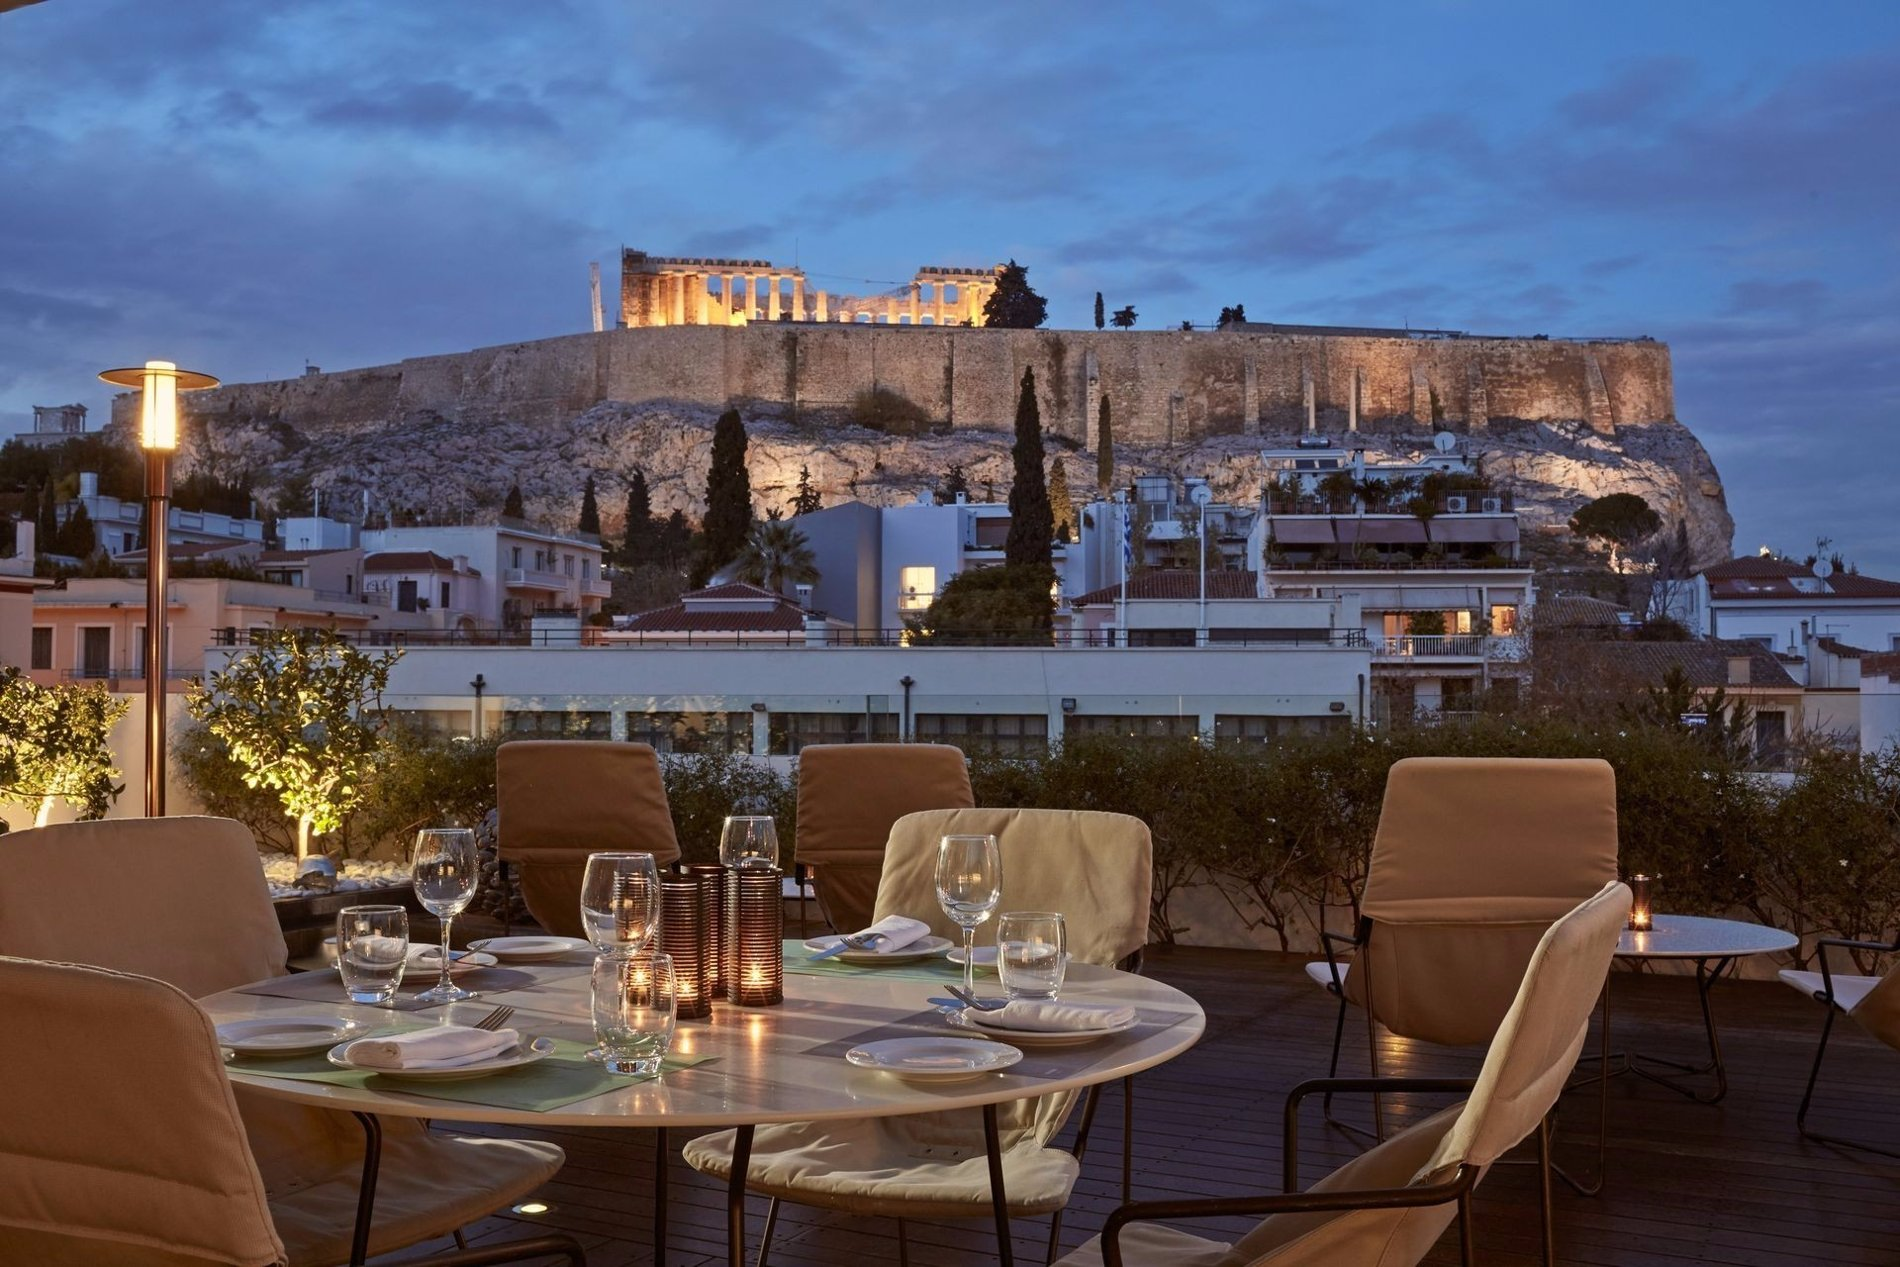 Enjoy your dinner at Herodion Hotel's rooftop. Source: Herodion